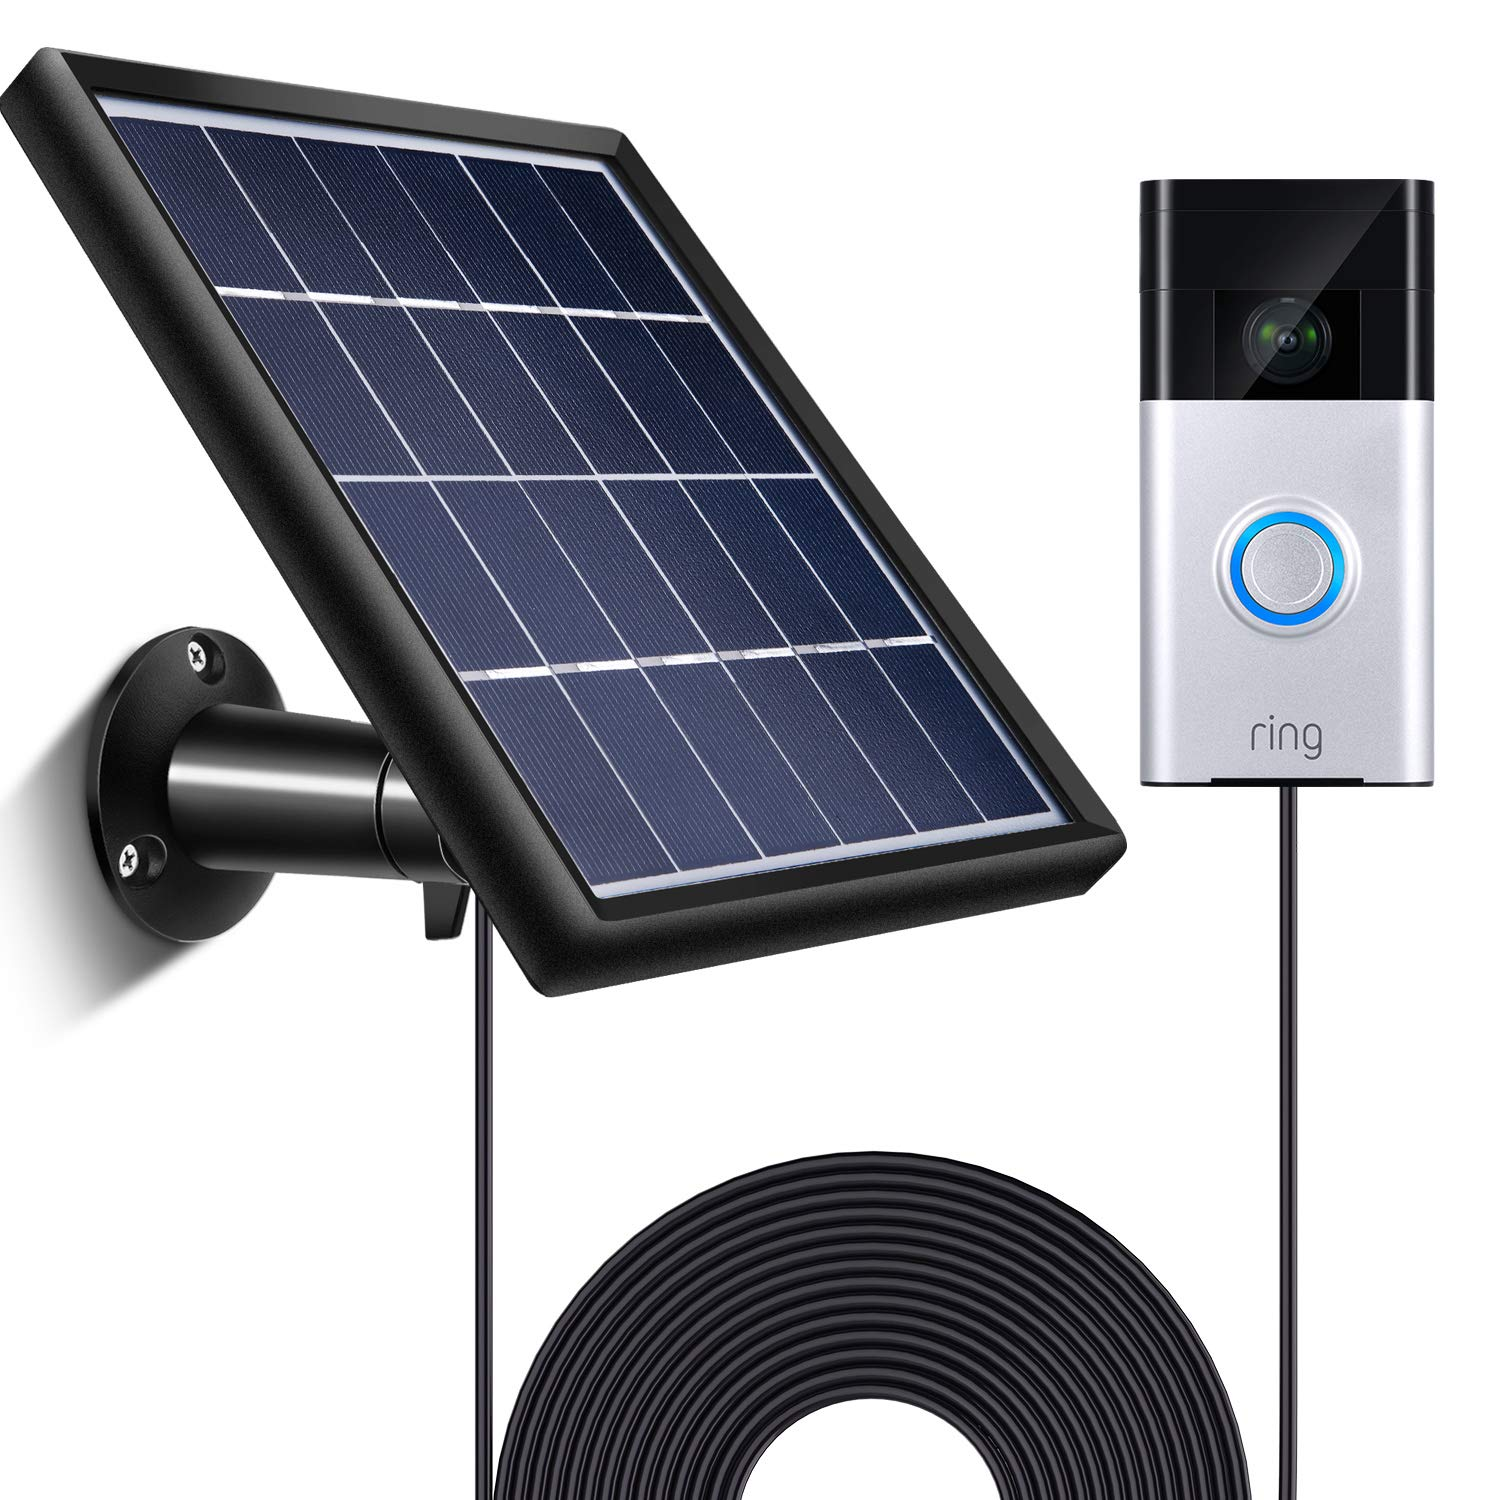 SATINIOR Solar Panel Compatible with Ring Video Doorbell 1, Waterproof Charge Continuously, 5 V/ 3.5 W (Max) Output, Includes Secure Wall Mount, 3.6 M/12 ft Power Cable (No Include Camera)